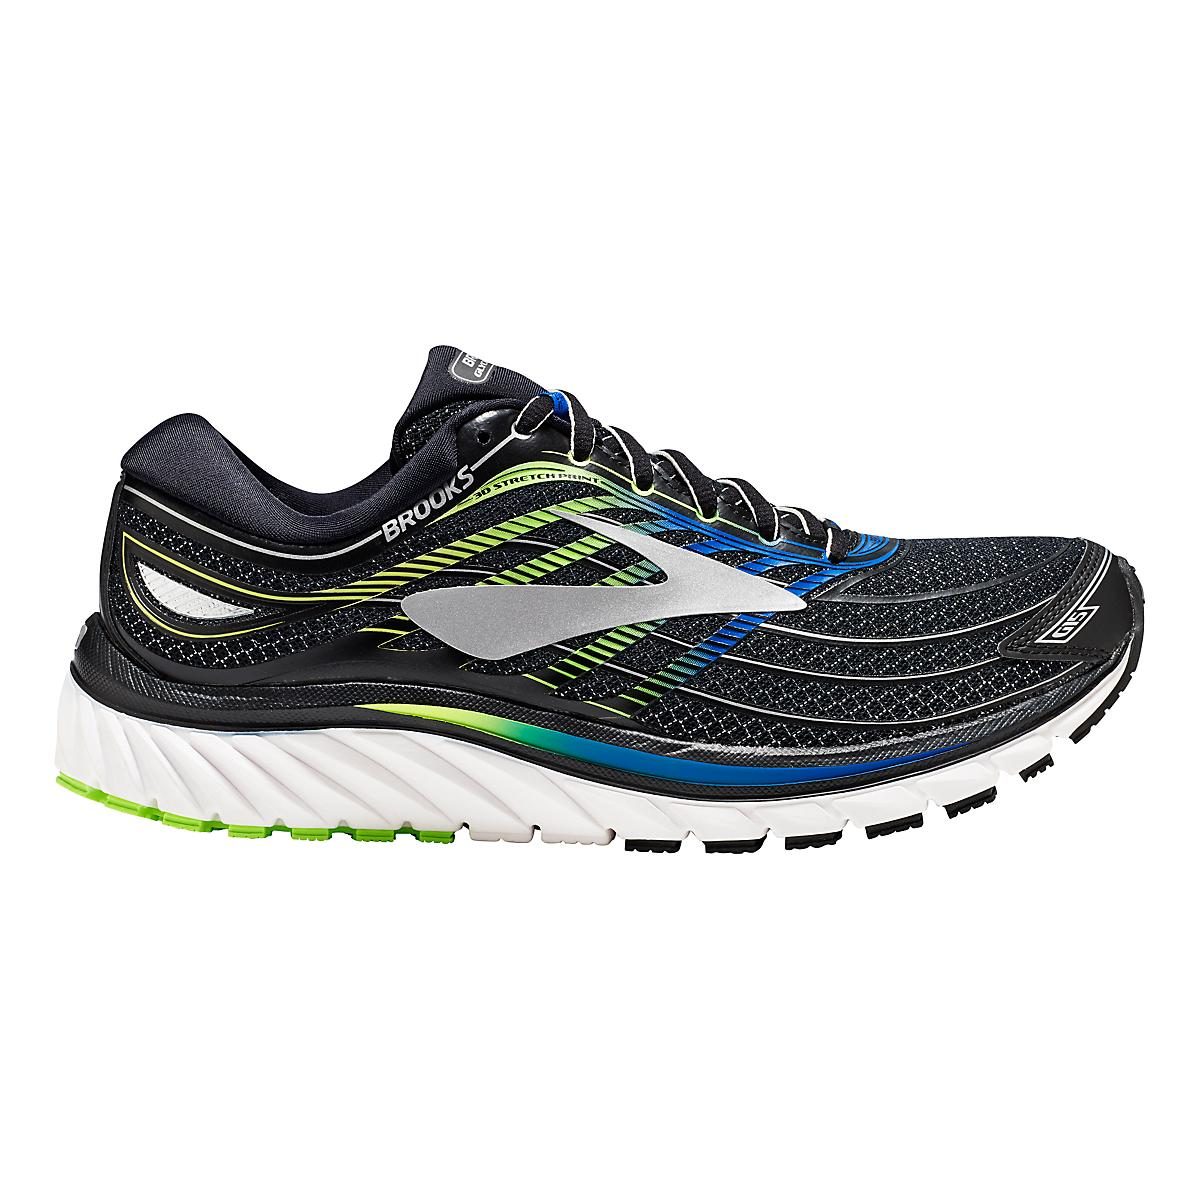 330f9e534e8 Brooks Glycerin 15 Men s Running Shoes for Sale